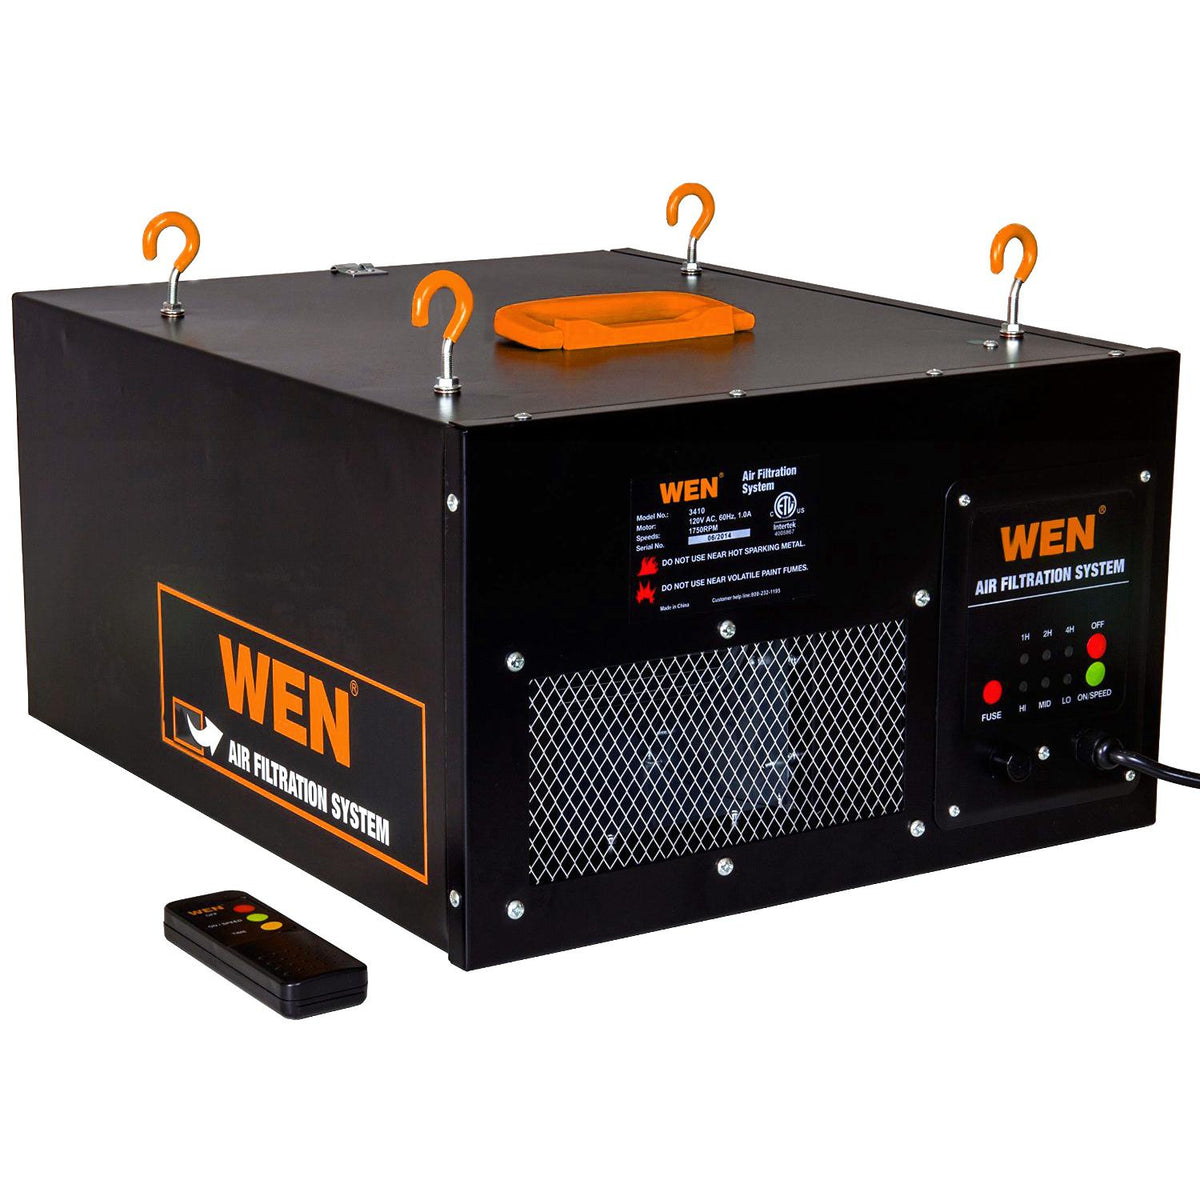 wenproducts.com